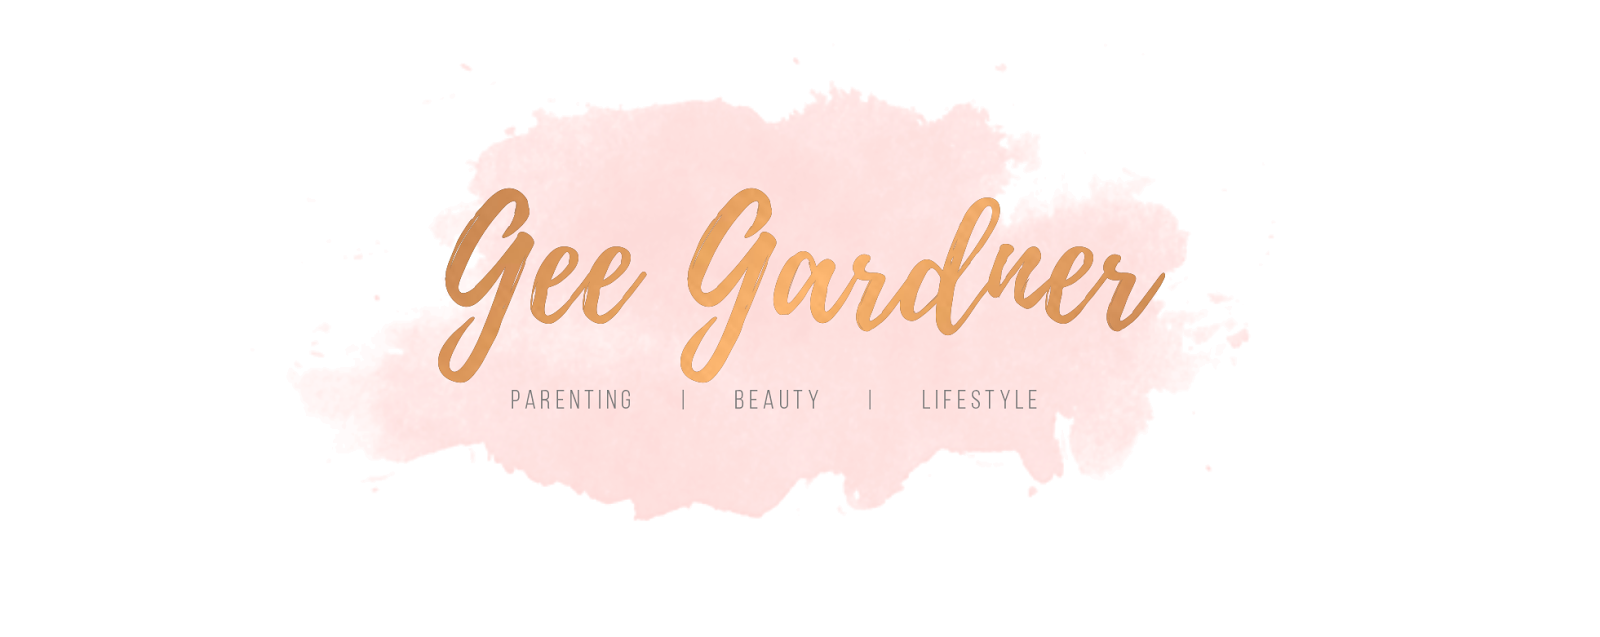 Gee Gardner - Parenting, Beauty & Lifestyle Blog